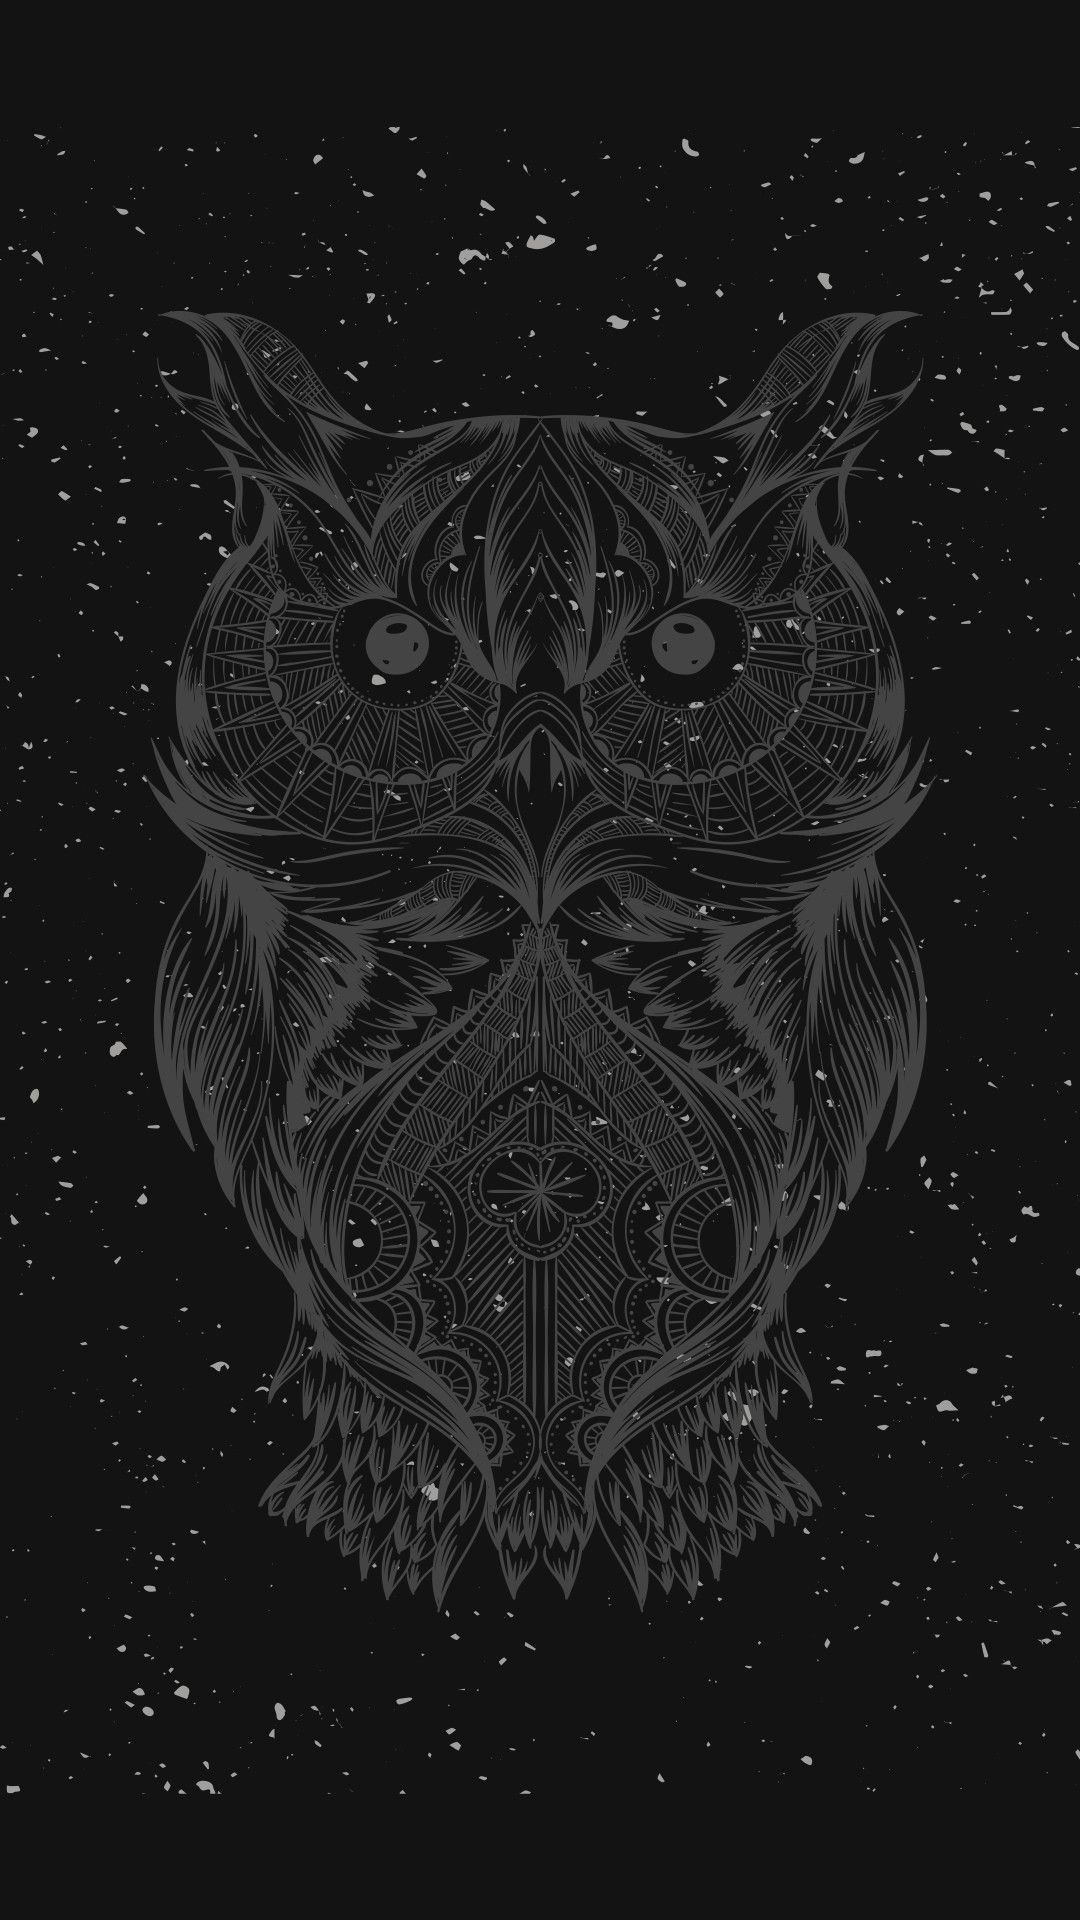 1080x1920 Owl iPhone Wallpaper (80+ images)